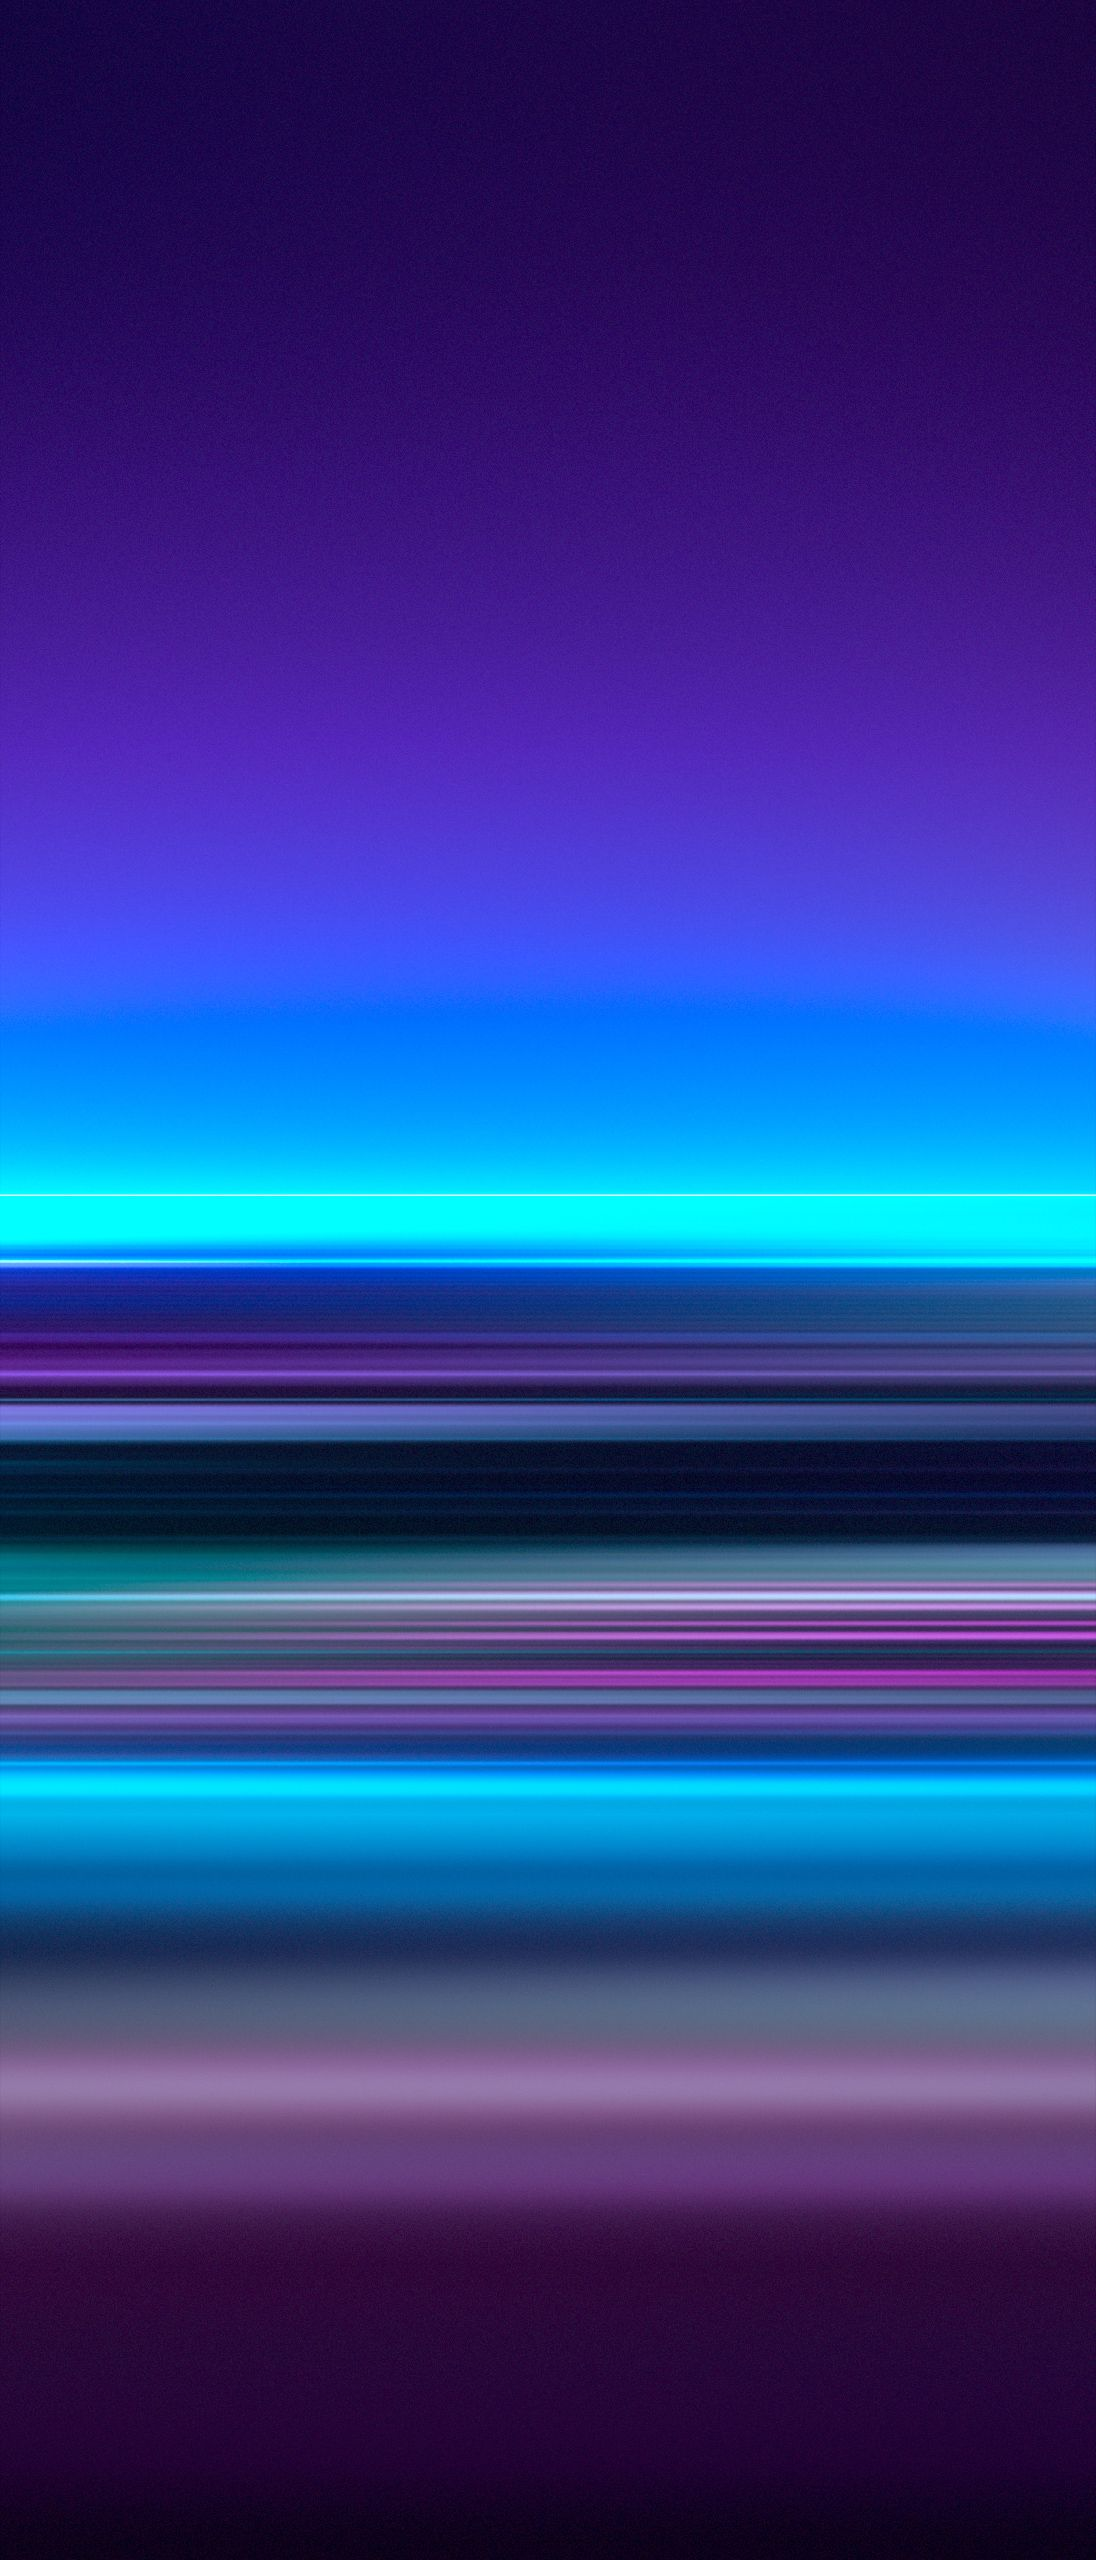 Download Sony Xperia 1 Wallpapers Full Hd Resolution Official